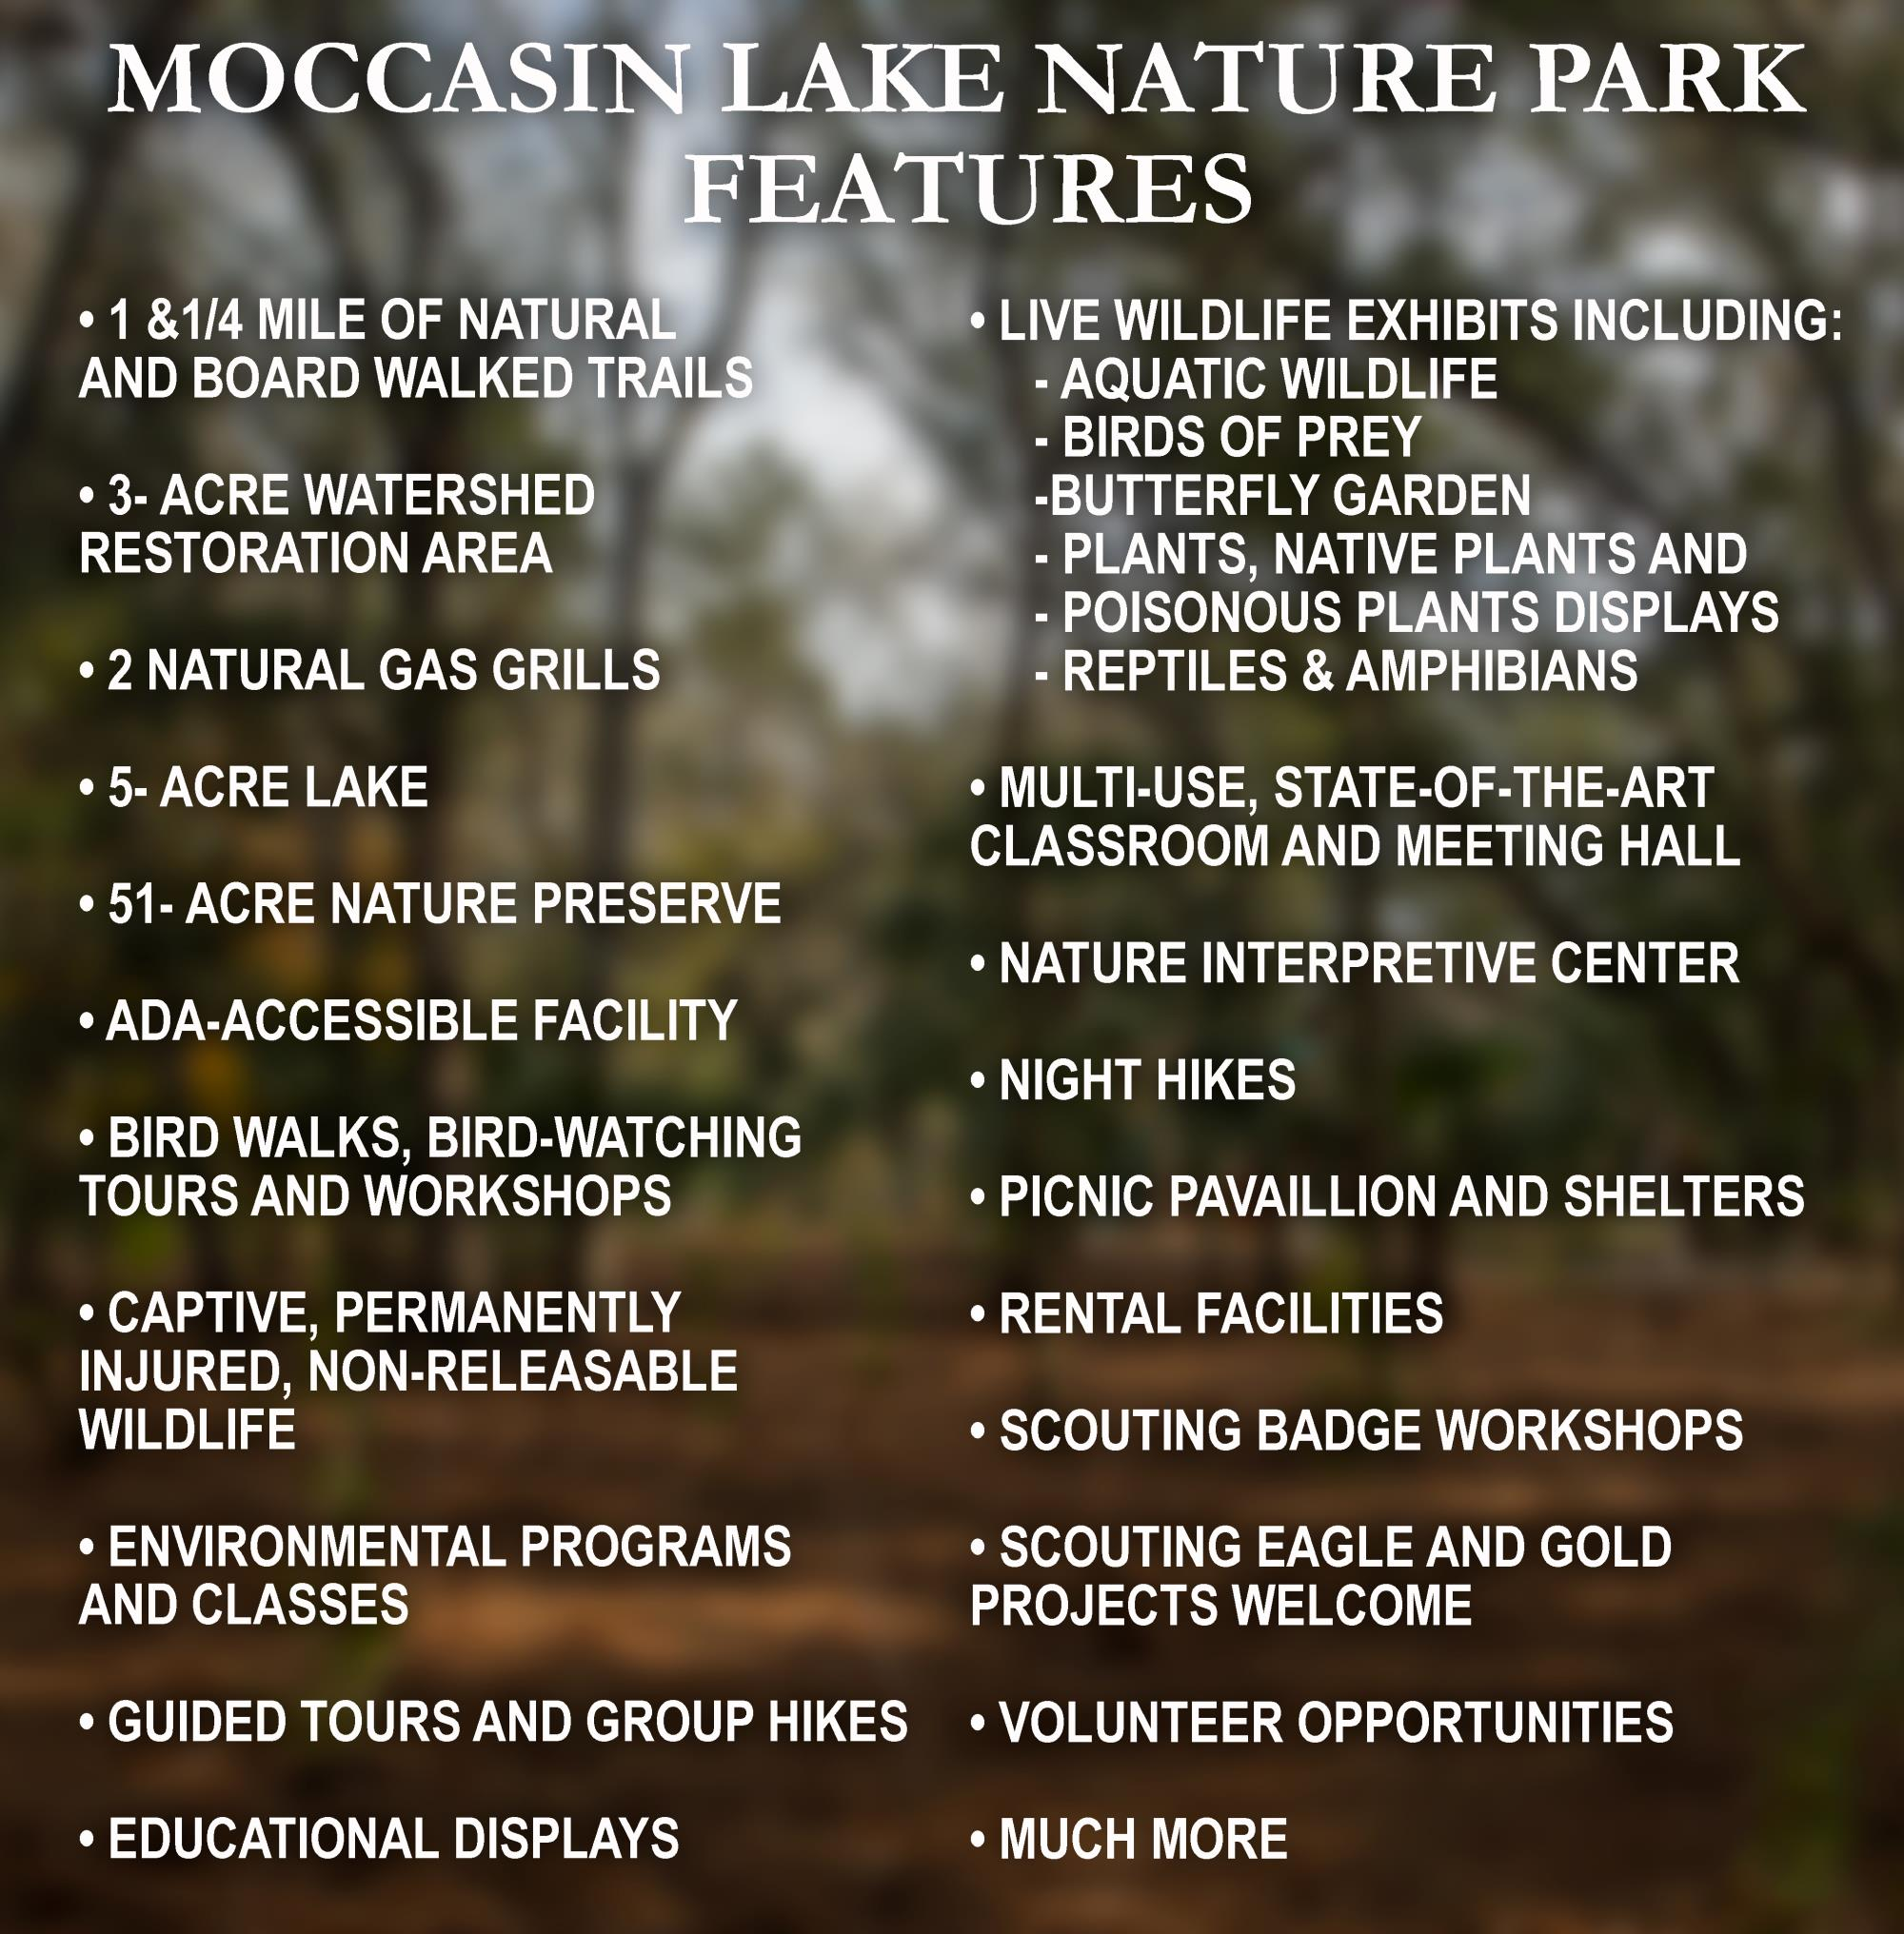 Features of Moccasin Lake Nature Park